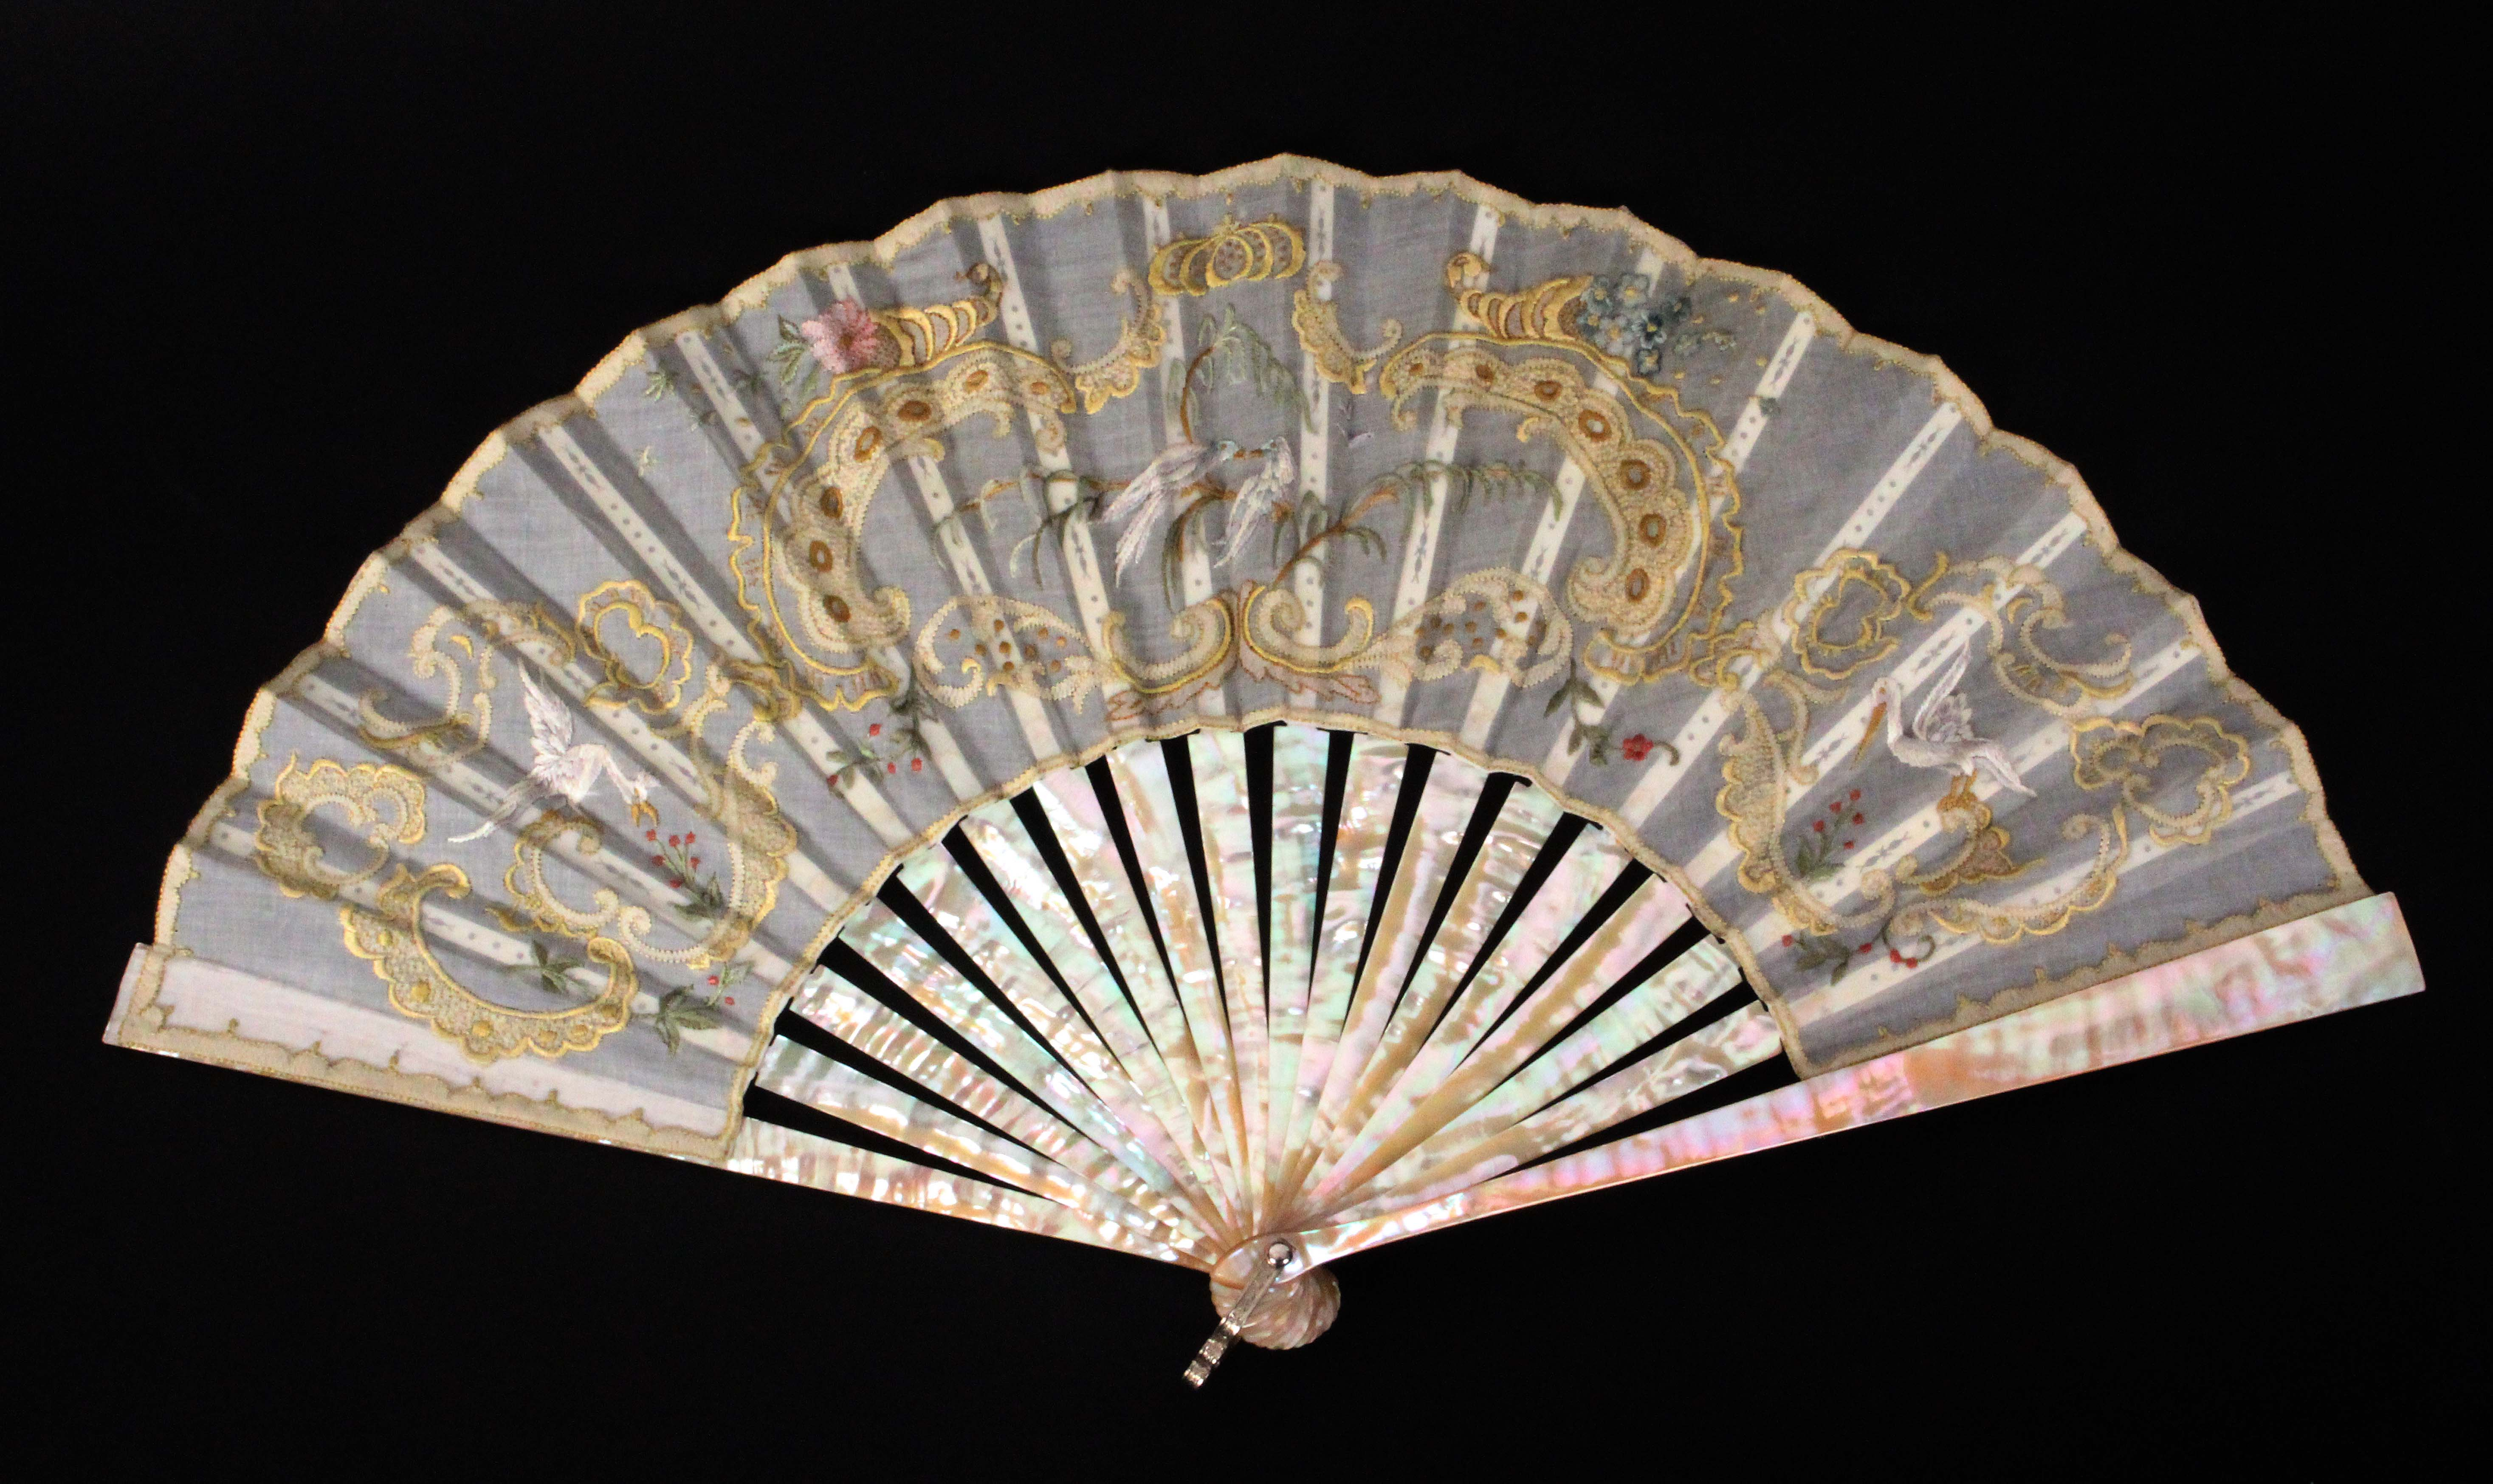 A 20th Century fan, mother of pearl guards and sticks, the fan embroidered with birds, flowers and